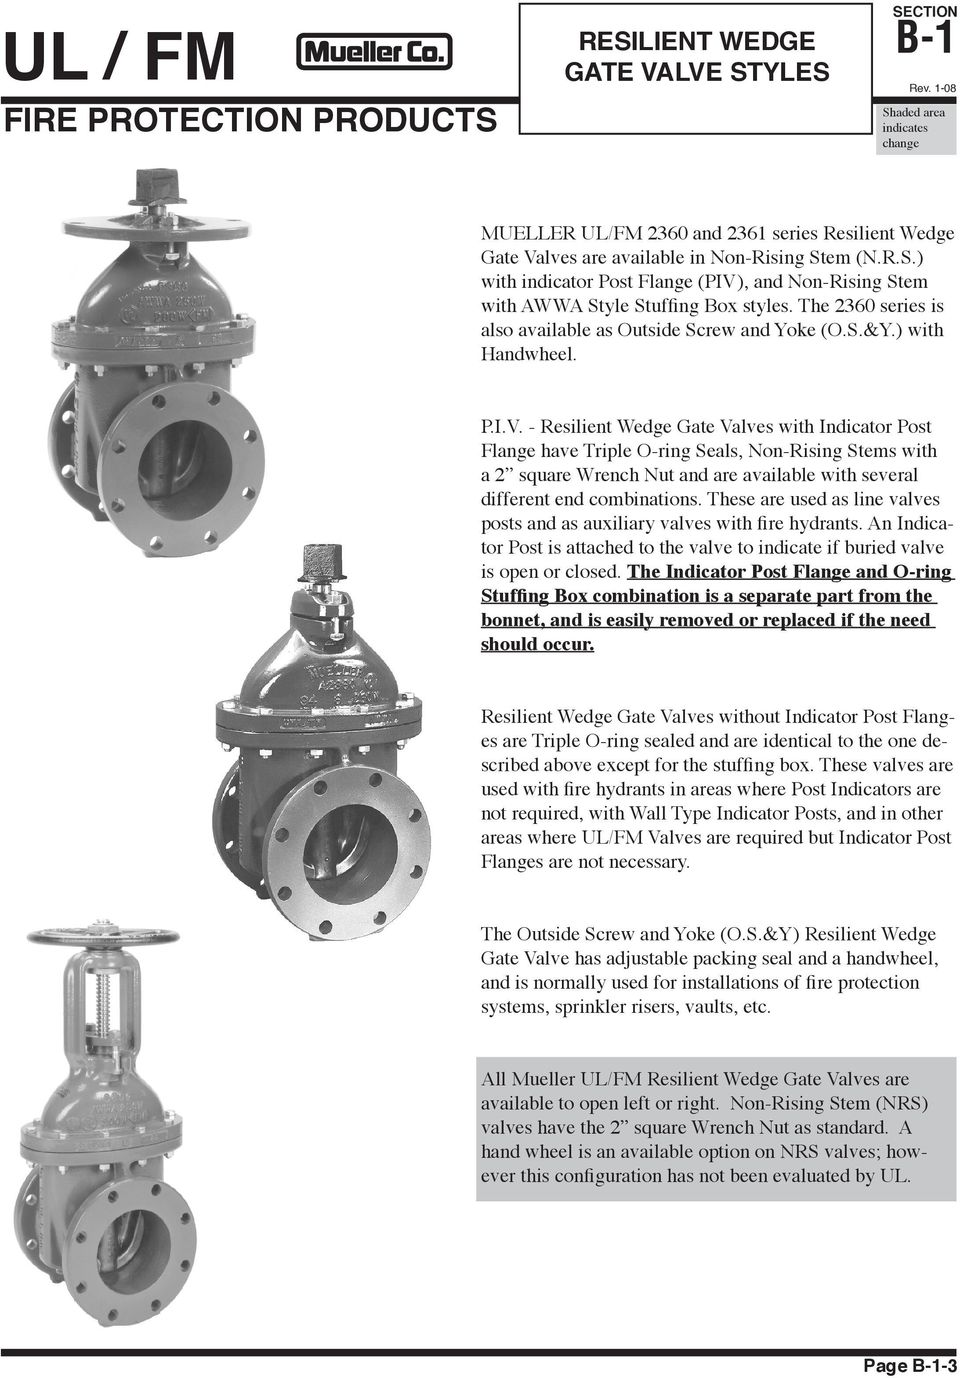 - Resilient Wedge Gate Valves with Indicator Post Flange have Triple O-ring Seals, Non-Rising Stems with a 2 square Wrench Nut and are available with several different end combinations.